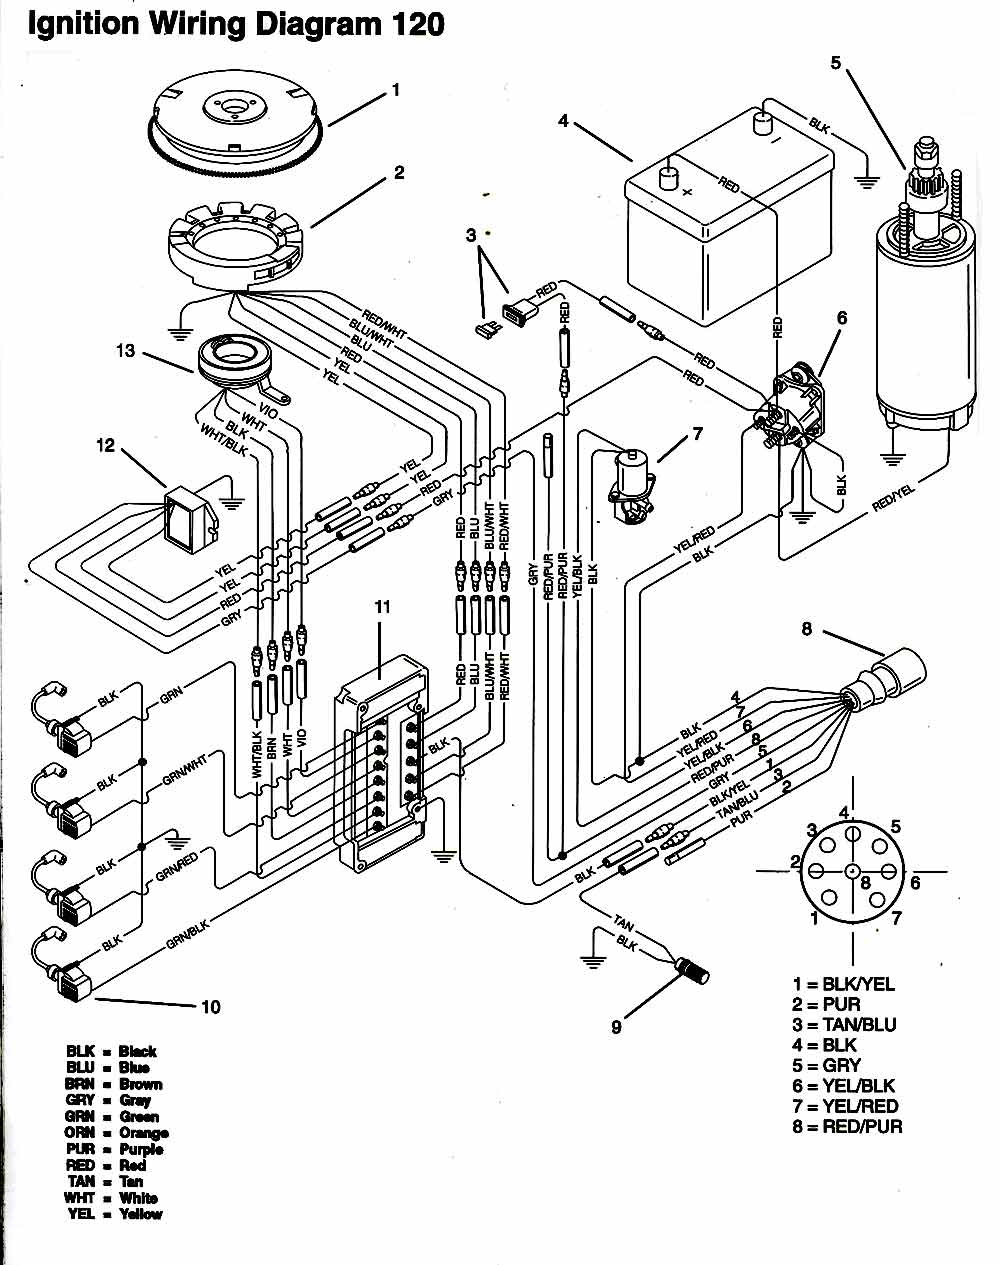 94 F250 Wire Diagram To Under Hood Fuse Box furthermore 94 Ford Explorer Vacuum Line Diagram furthermore 1996 Ford F150 Wiring Diagrams moreover 1003234 Gp Controller in addition 85 Mustang Ac Wiring Diagram. on 94 ford aerostar van